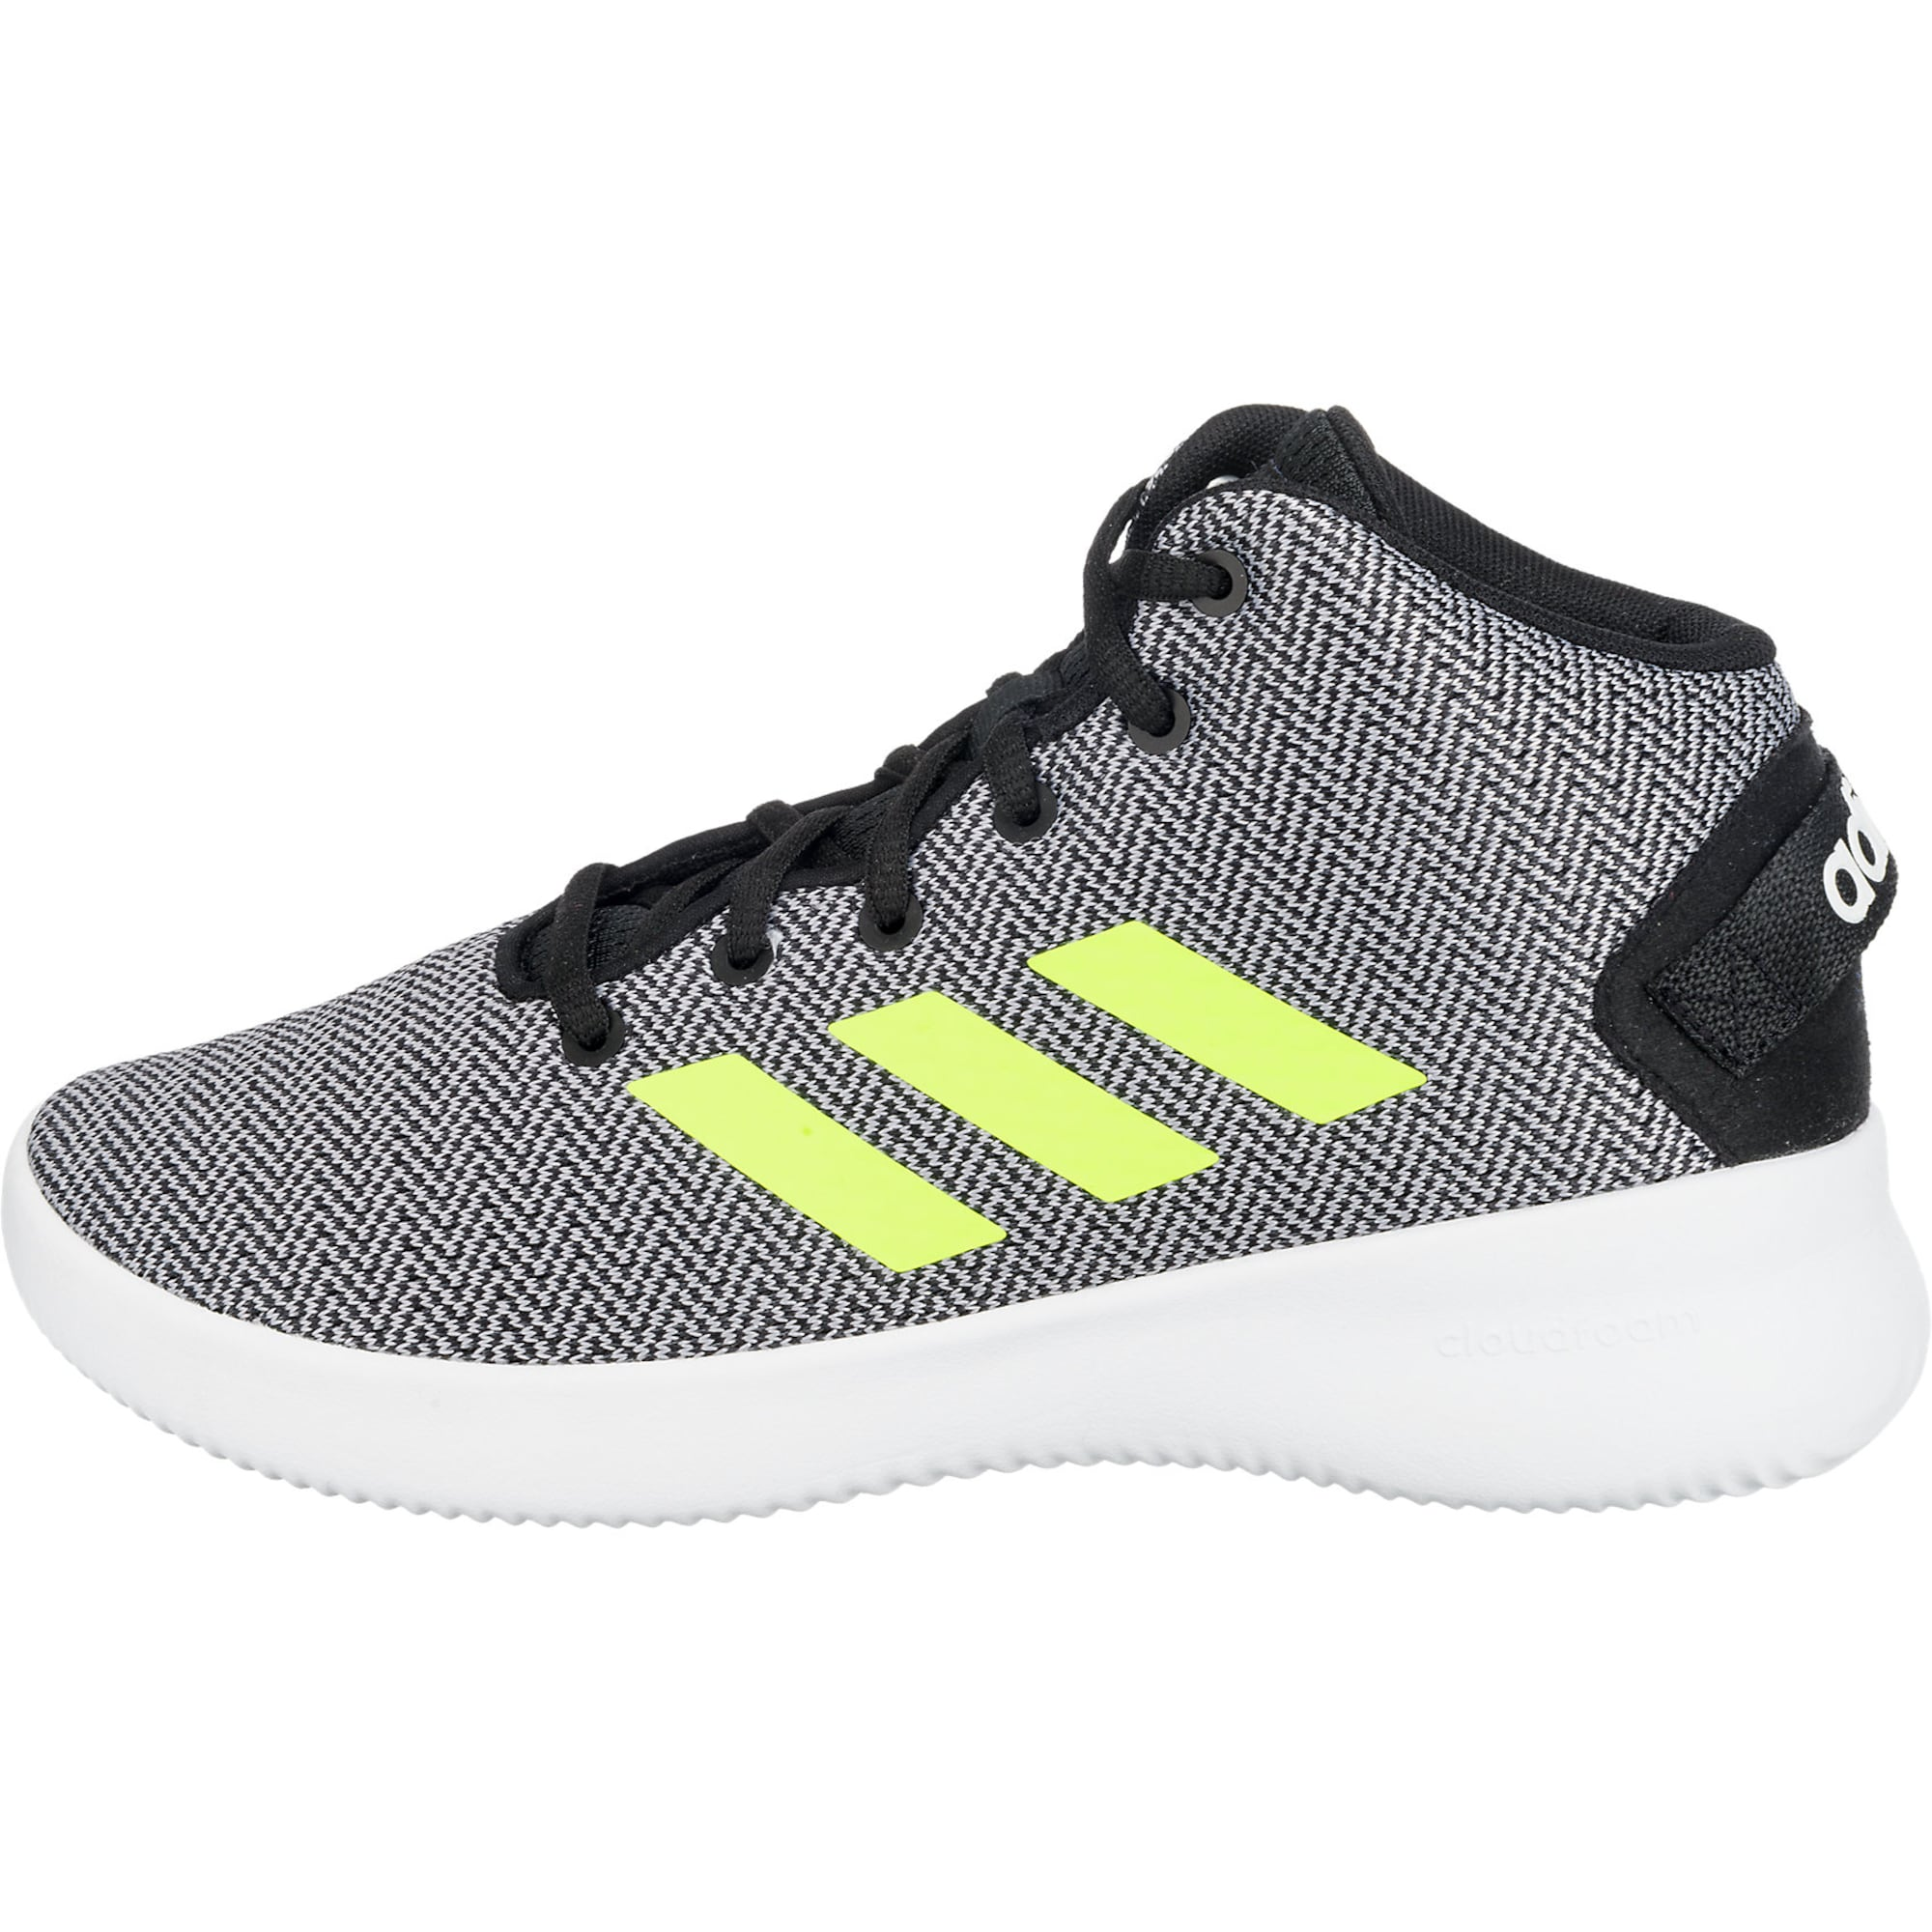 a0cebb5763 Kinder,Mädchen ADIDAS PERFORMANCE ADIDAS PERFORMANCE Sneakers High CF  REFRESH MID K anthrazit,